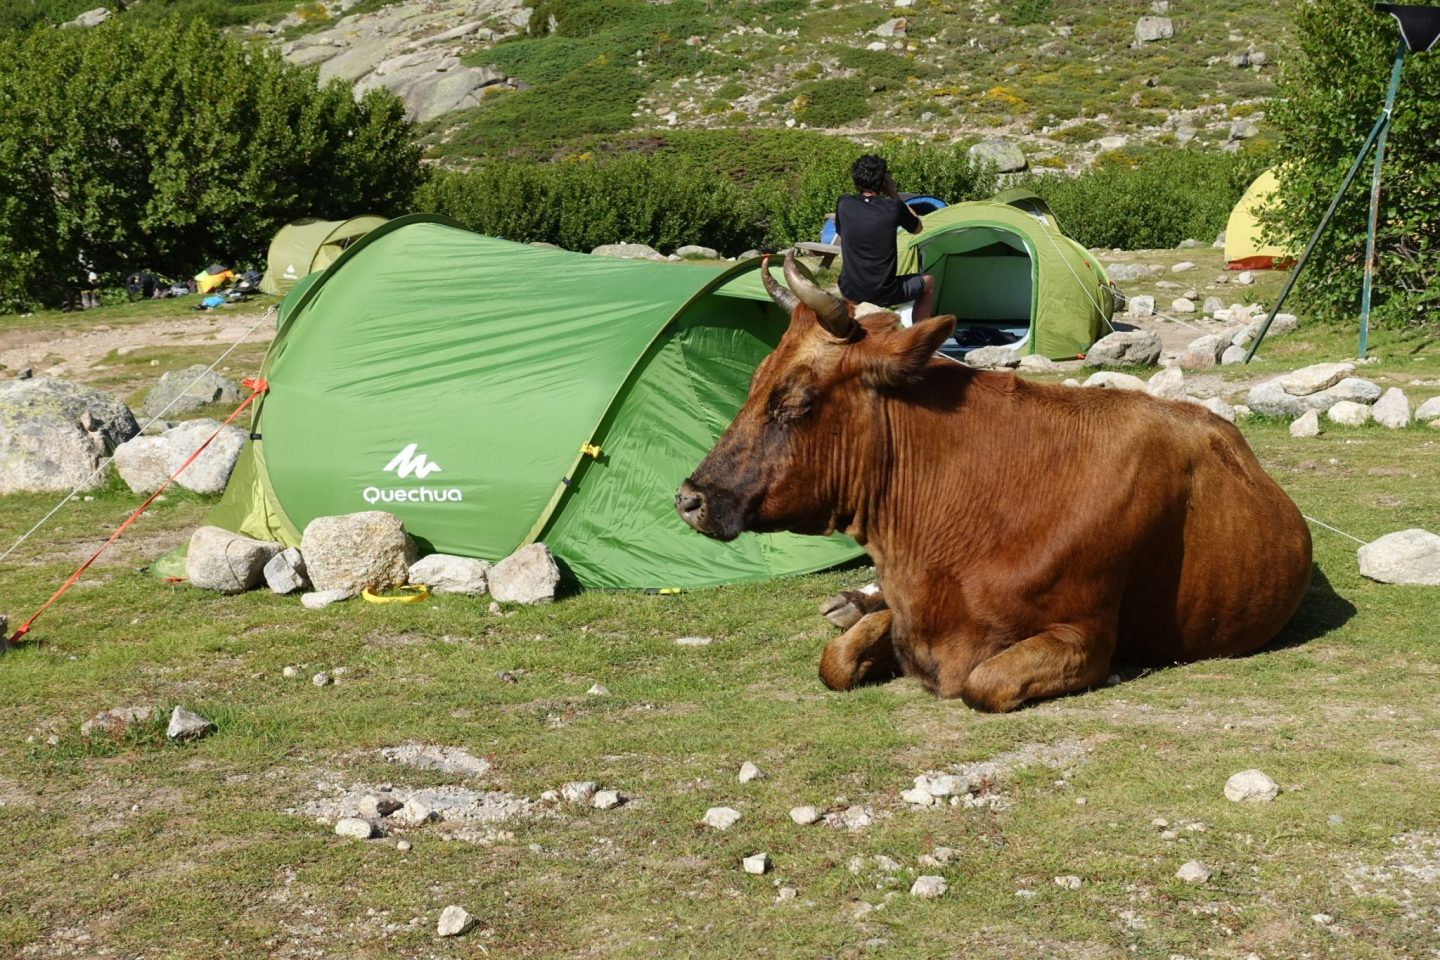 A cow in the middle of a campsite, lying down amongst campers